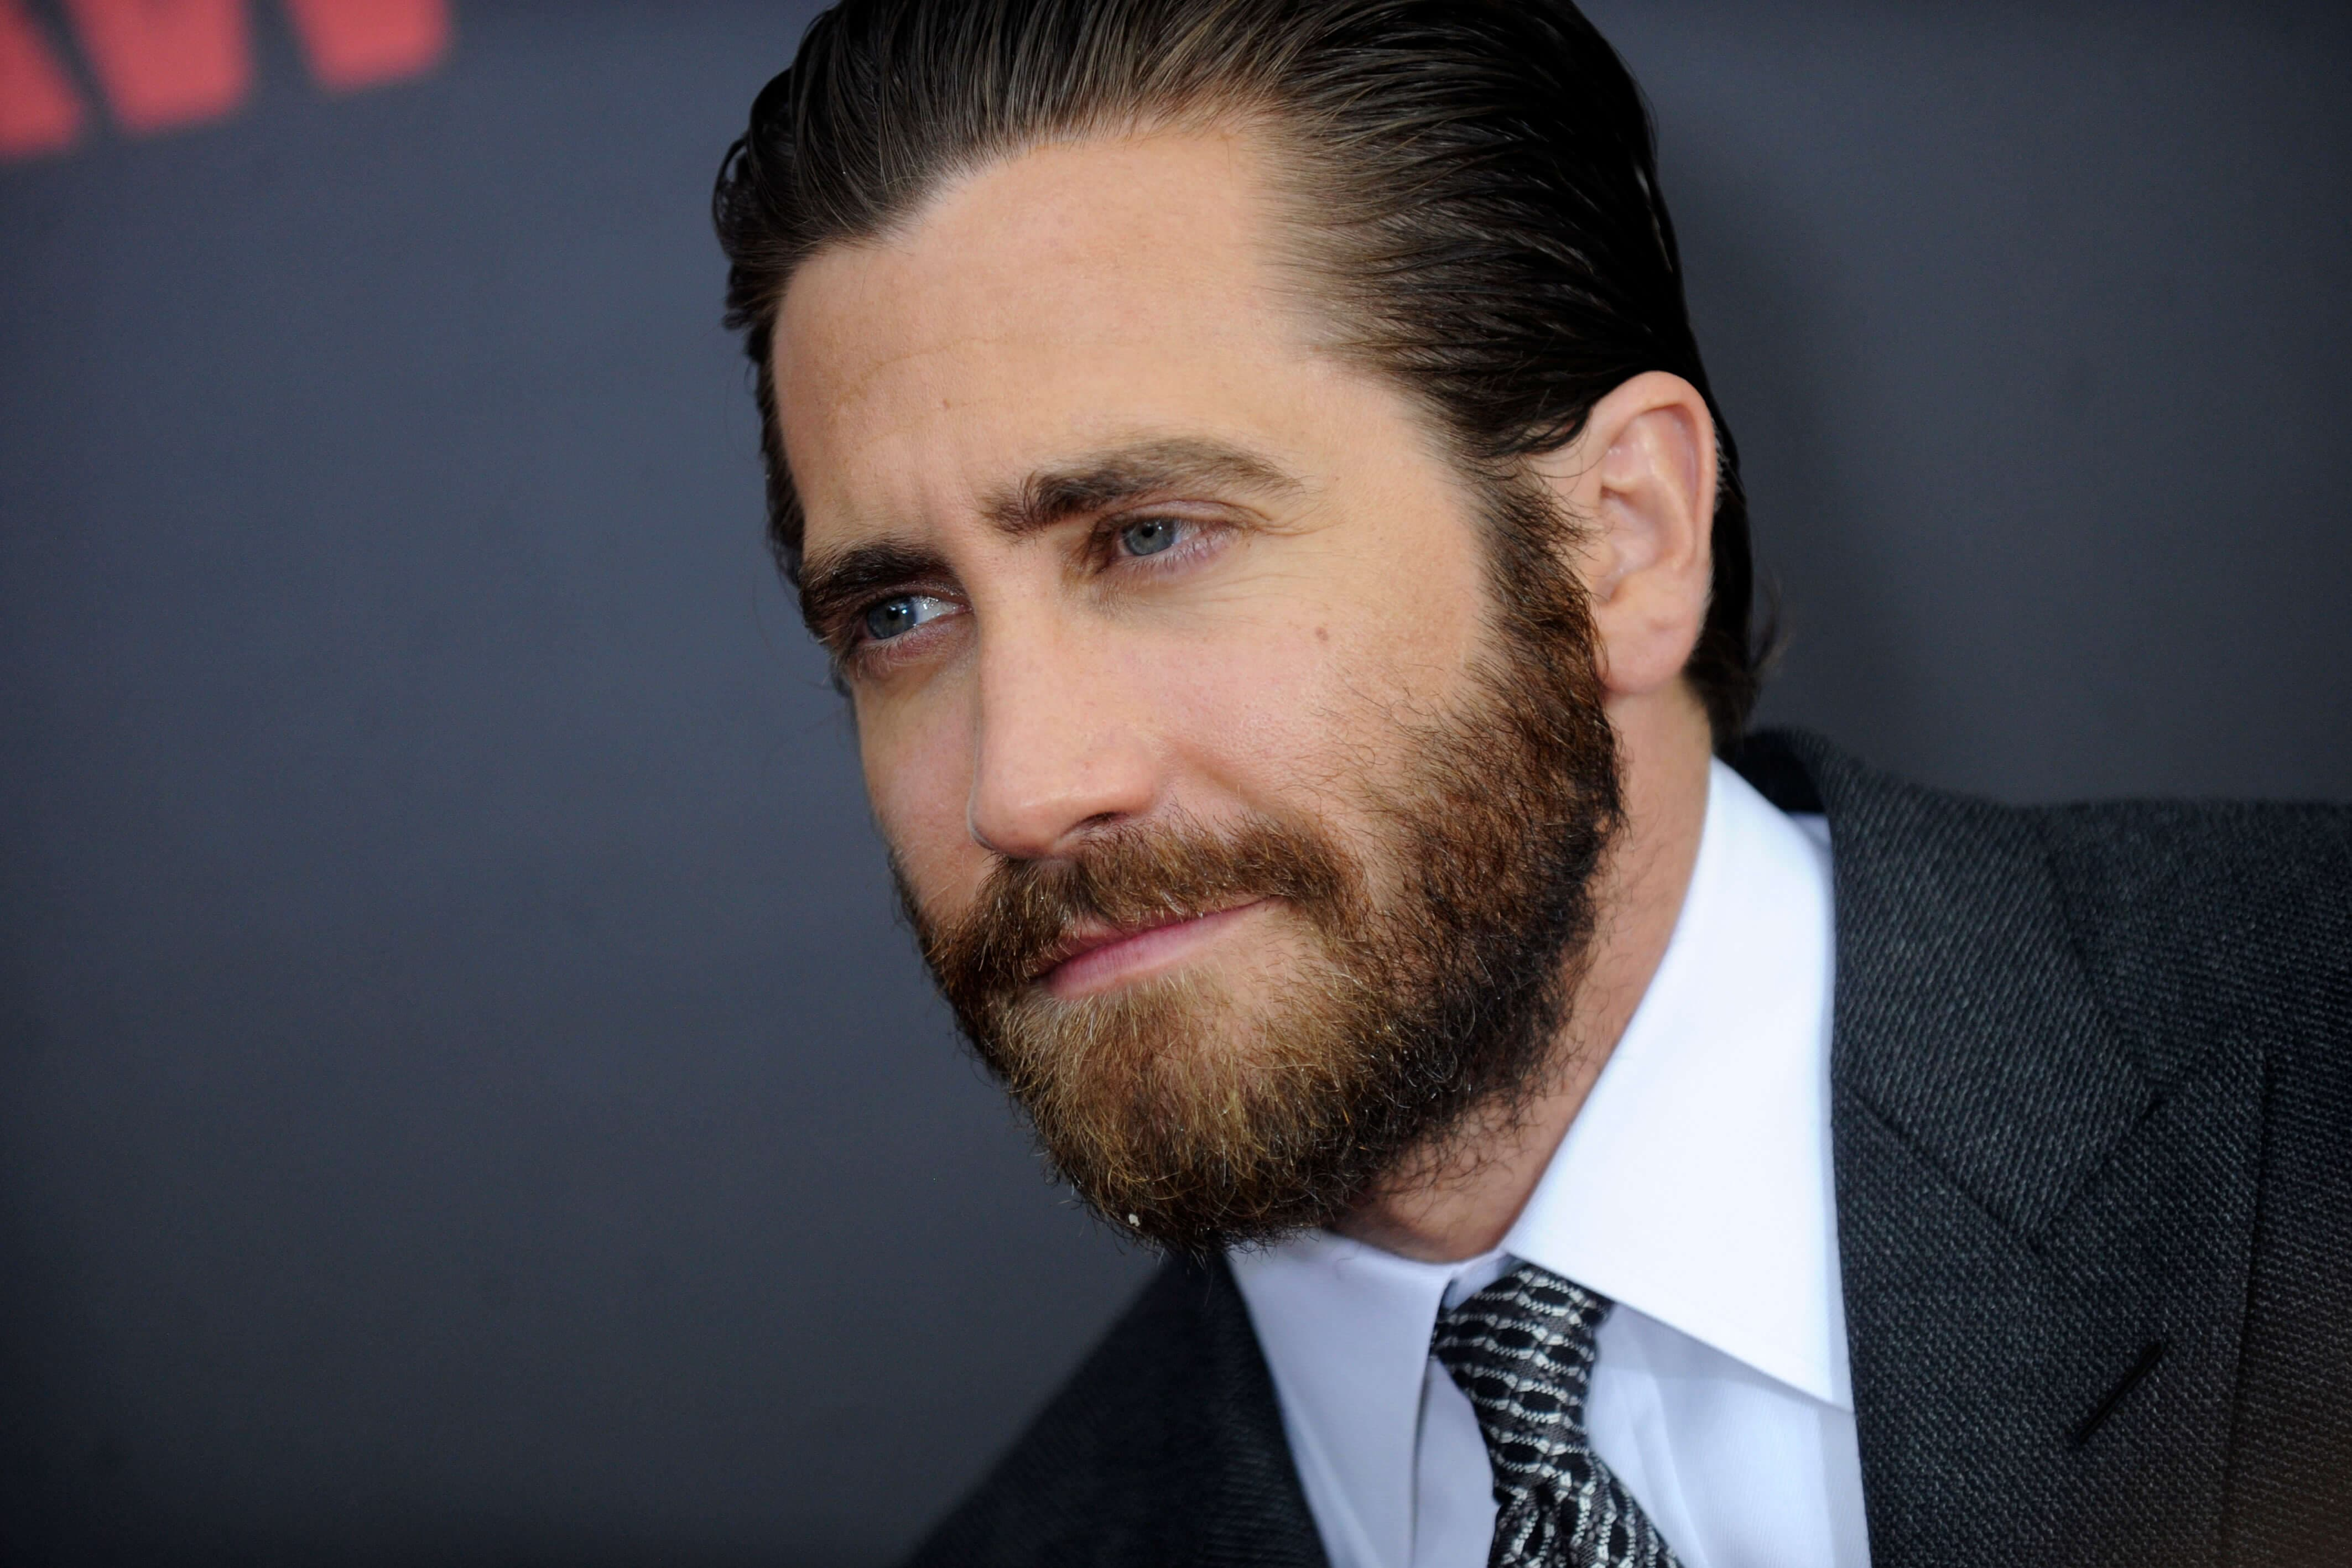 beard styles for face shape photo - 1